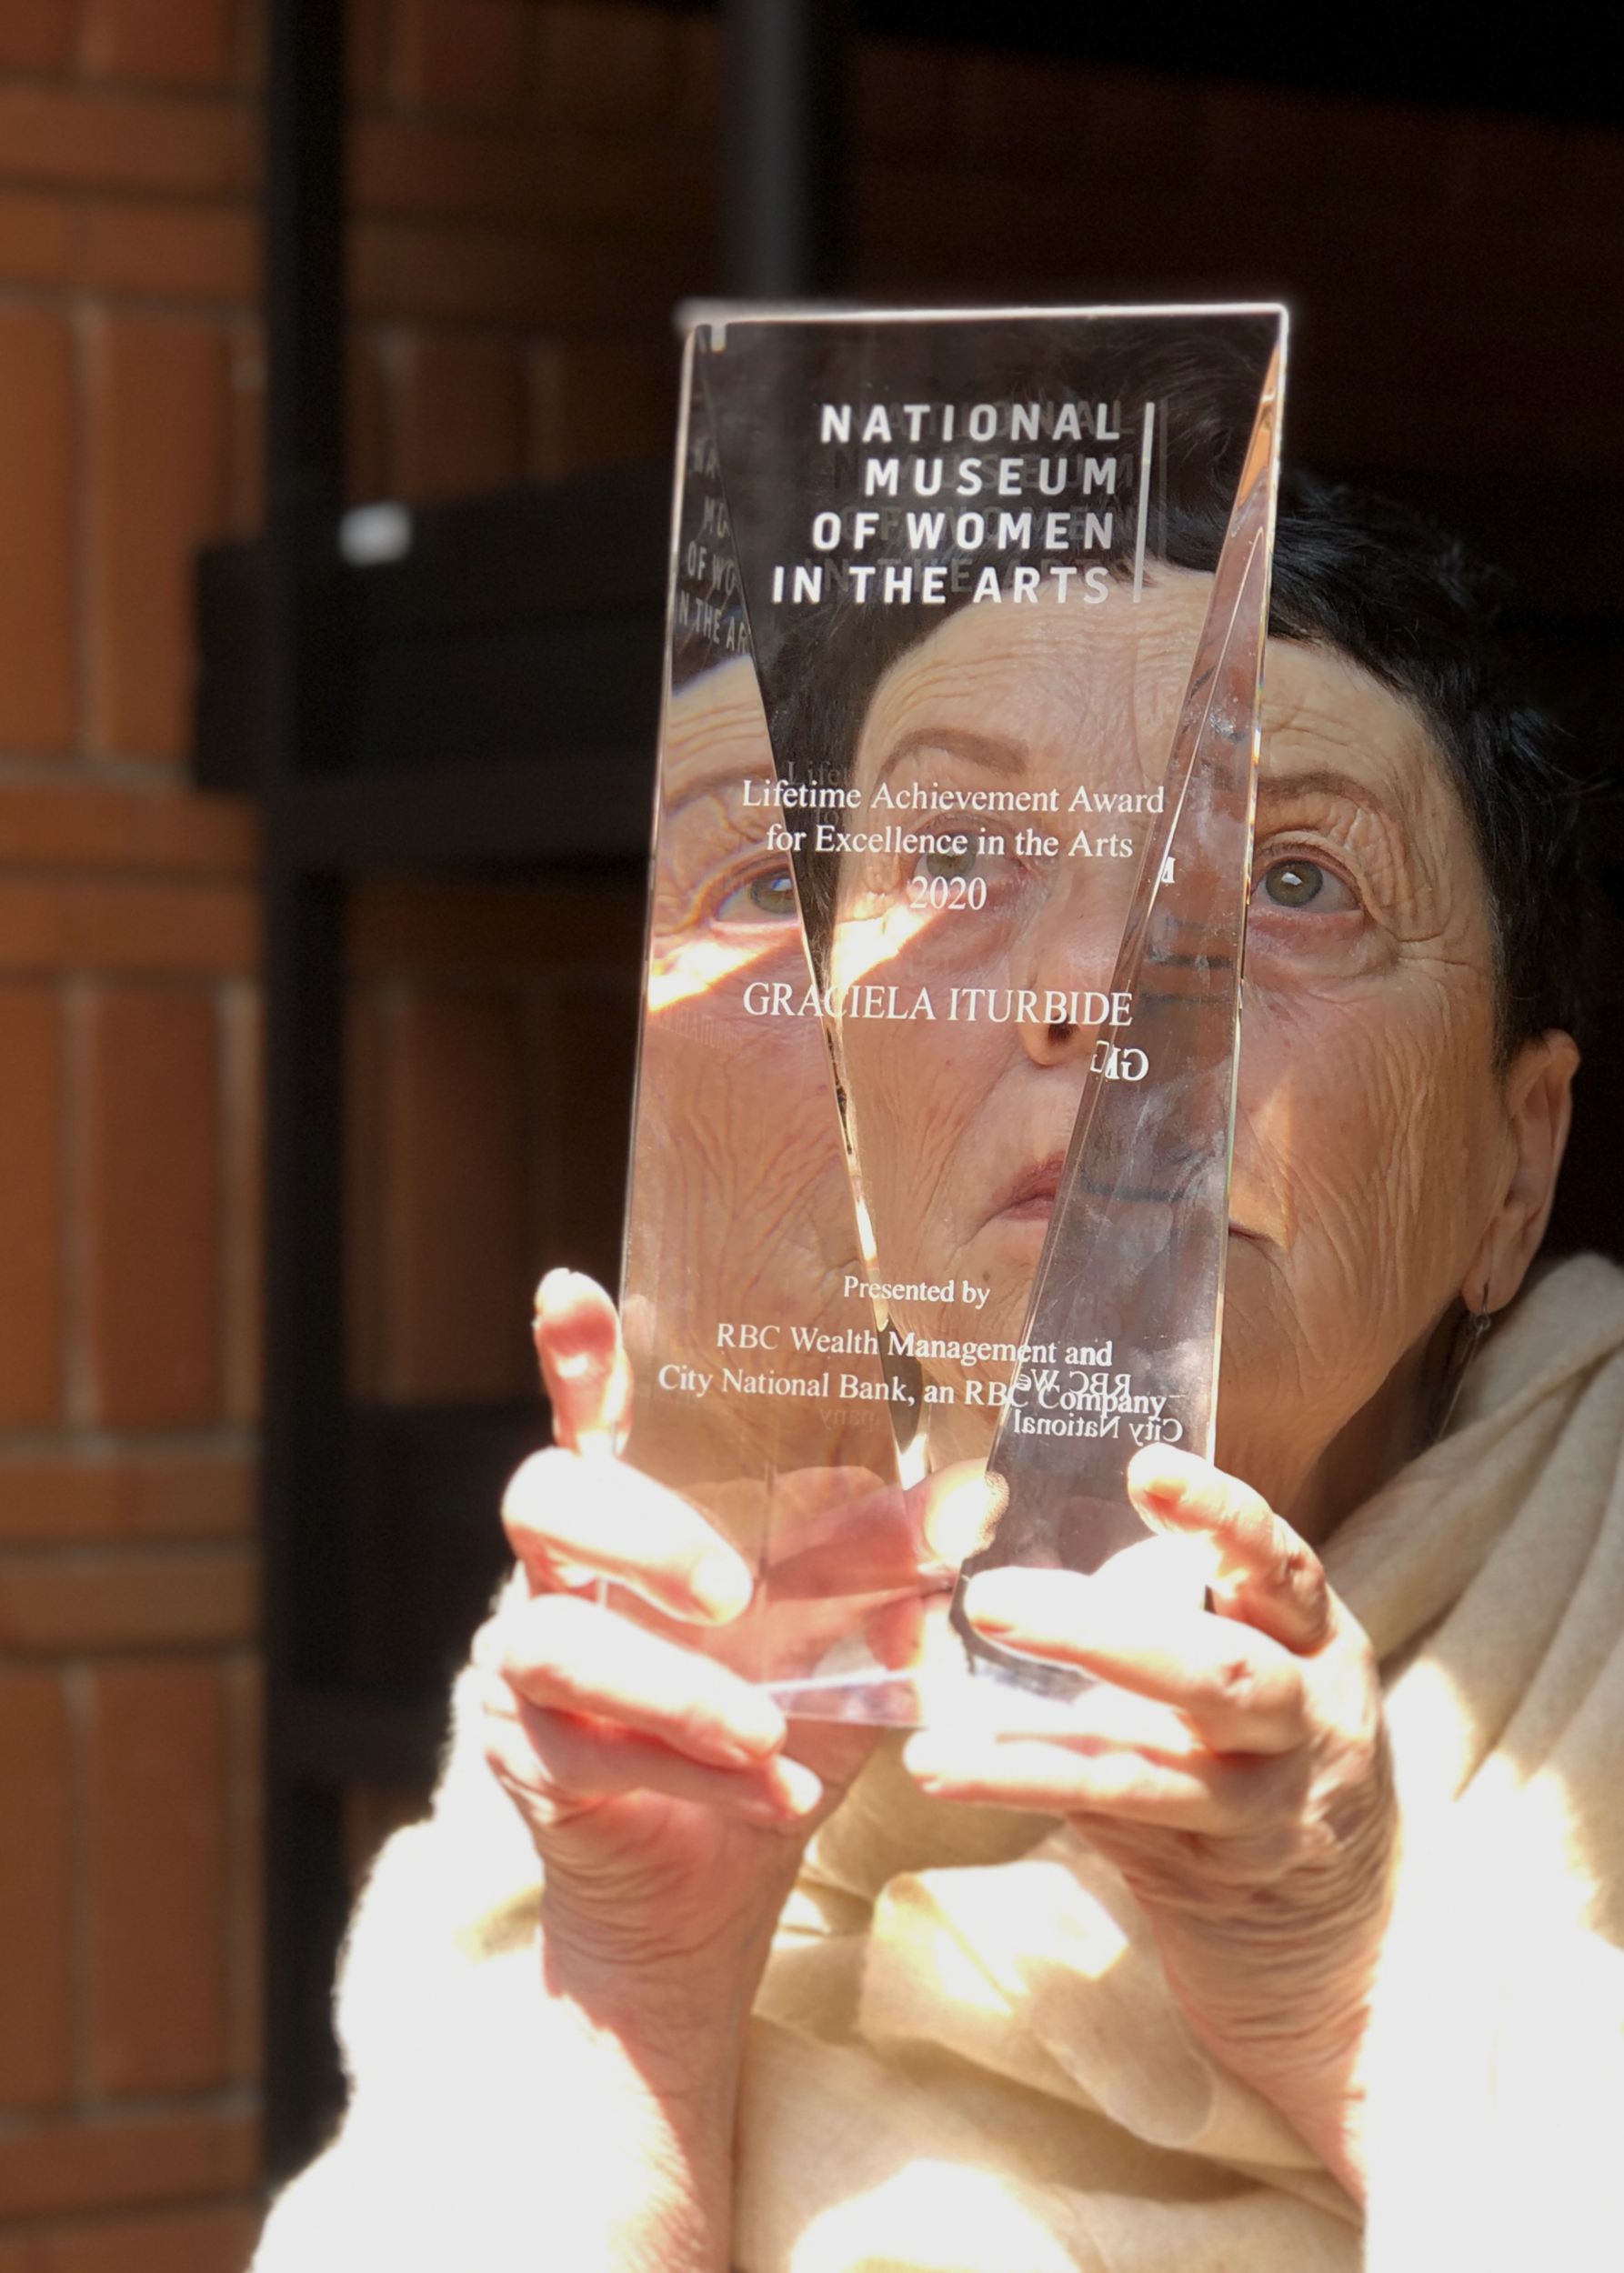 A light-skinned older woman with brown cropped hair holds a clear rectangular award up to her face, so that half of her face is visible through the award; sunlight streams in on the woman's face and hands.